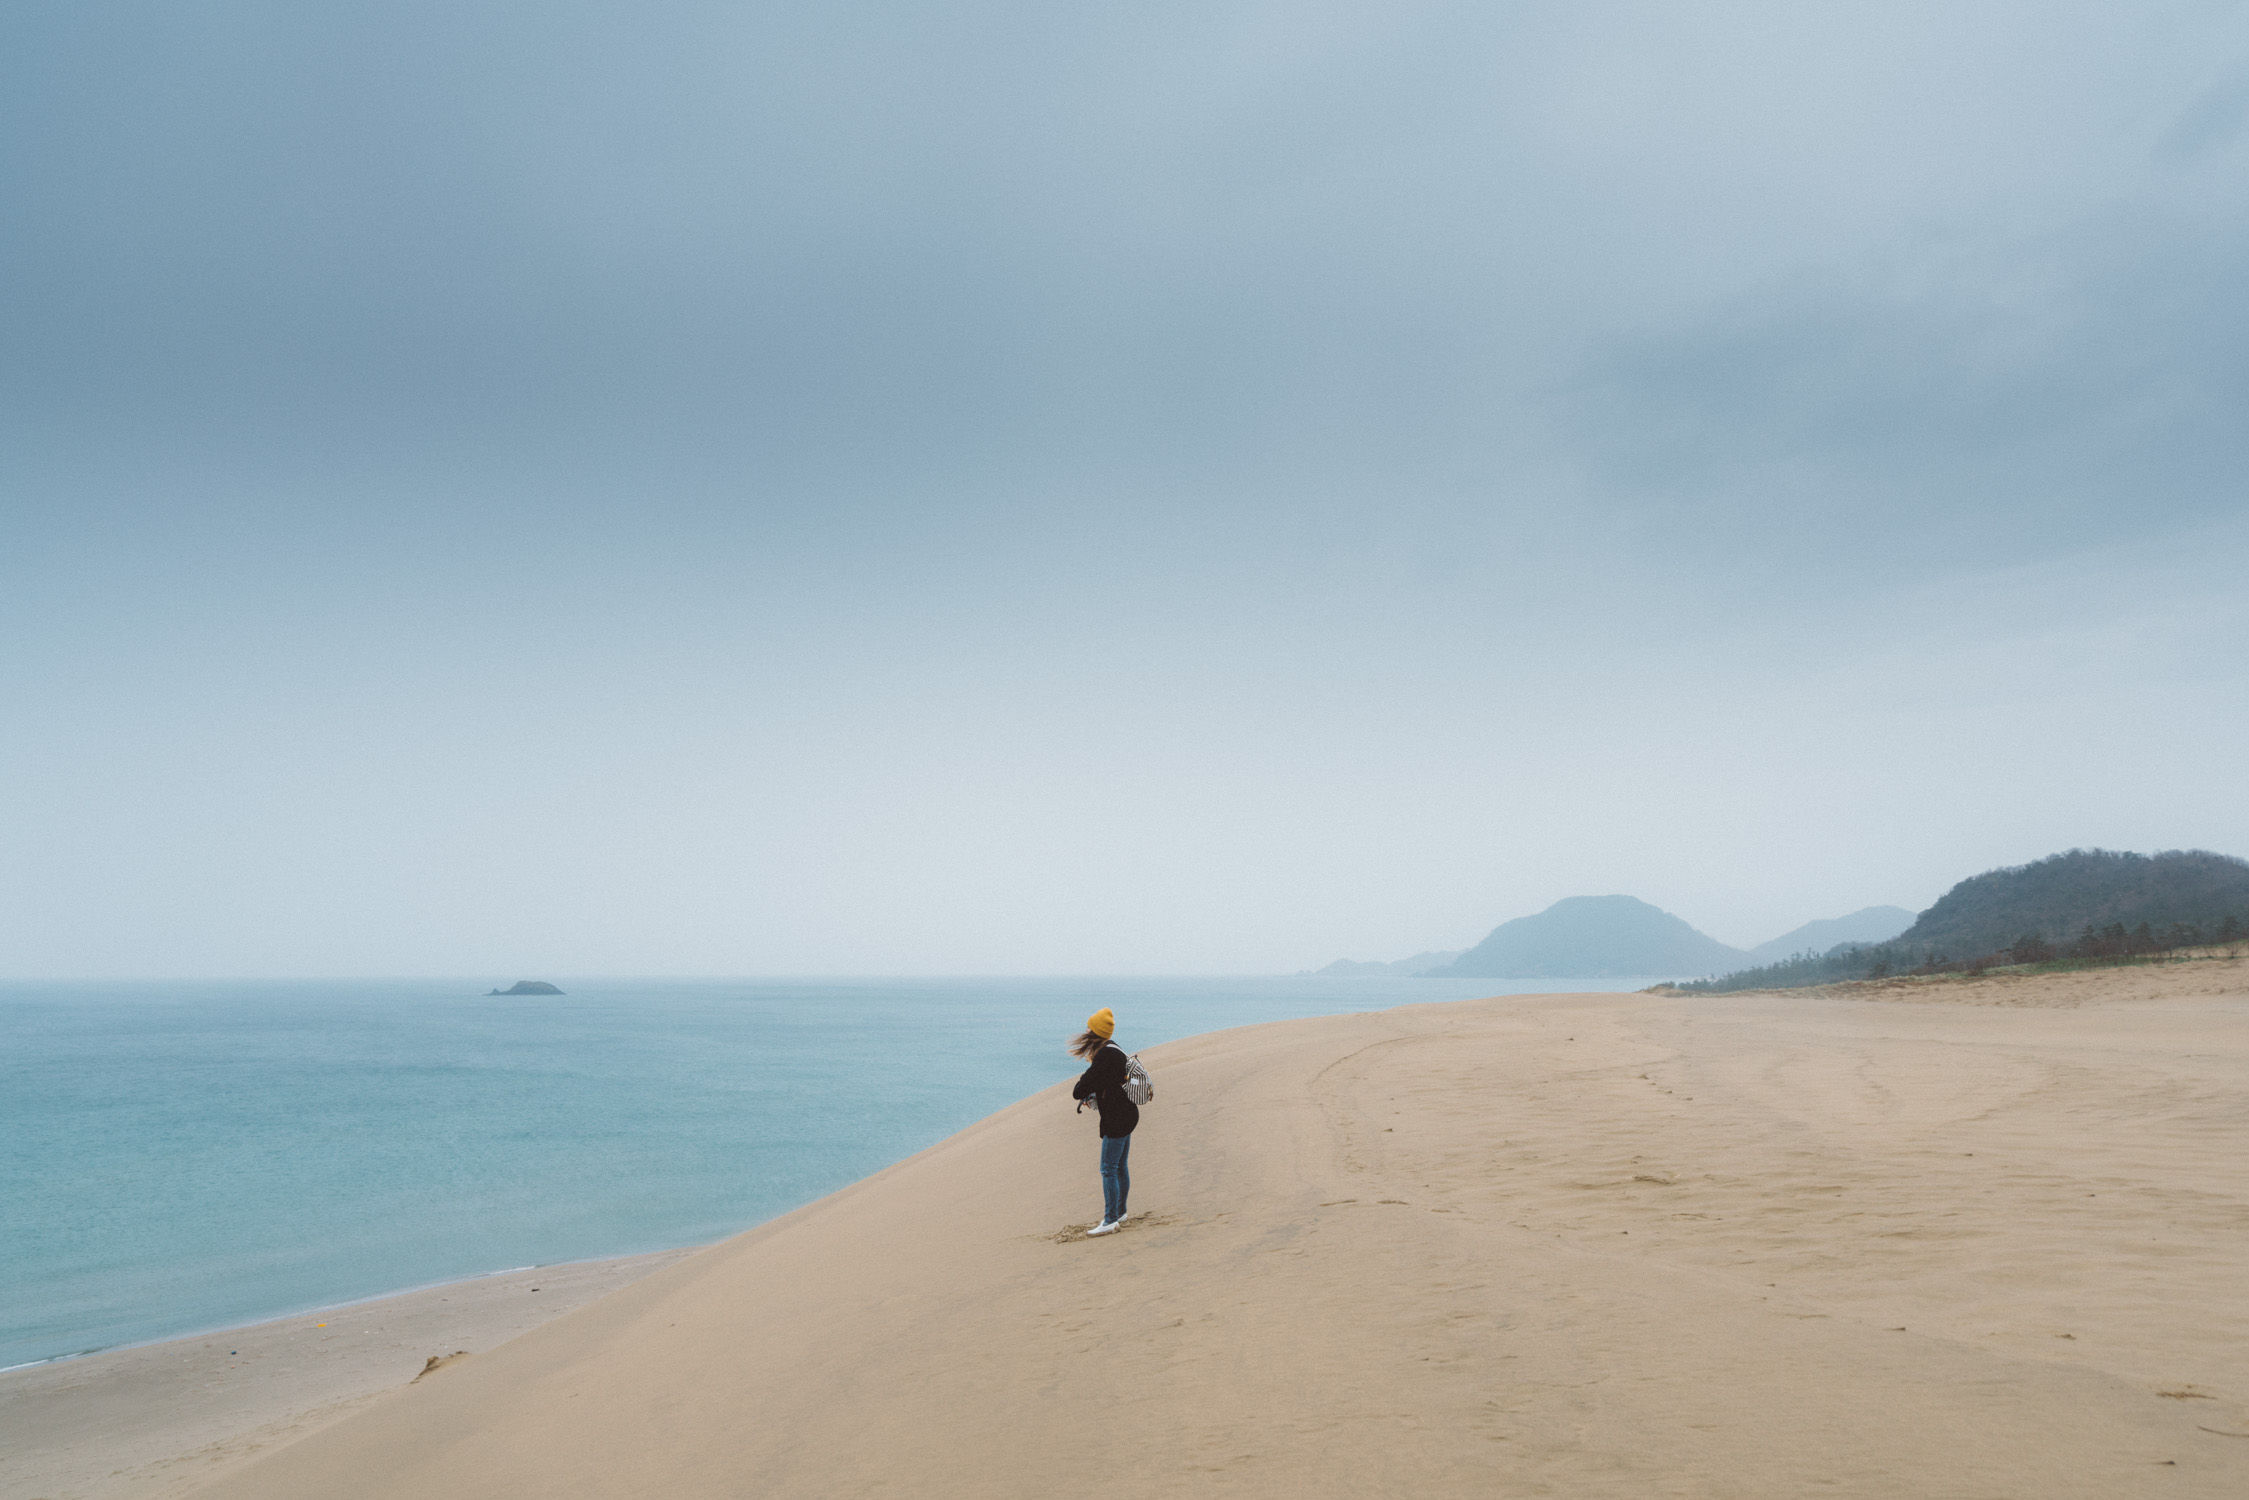 portrait at tottori sand dune [David Tan]